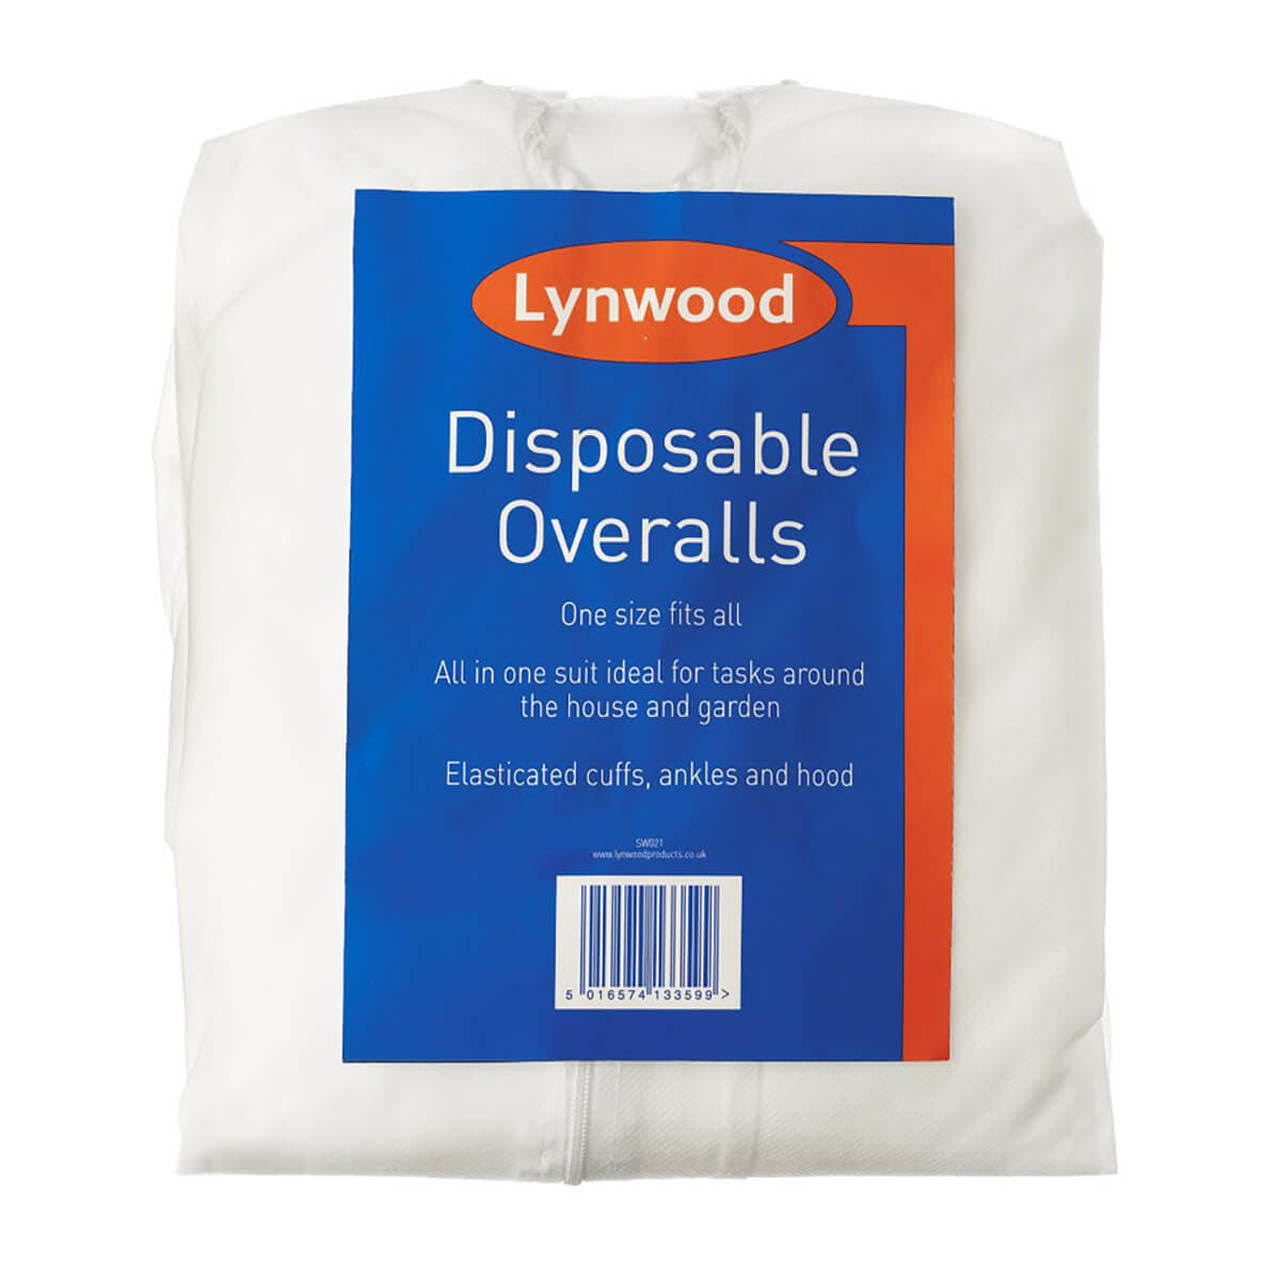 Lynwood Disposable Overalls